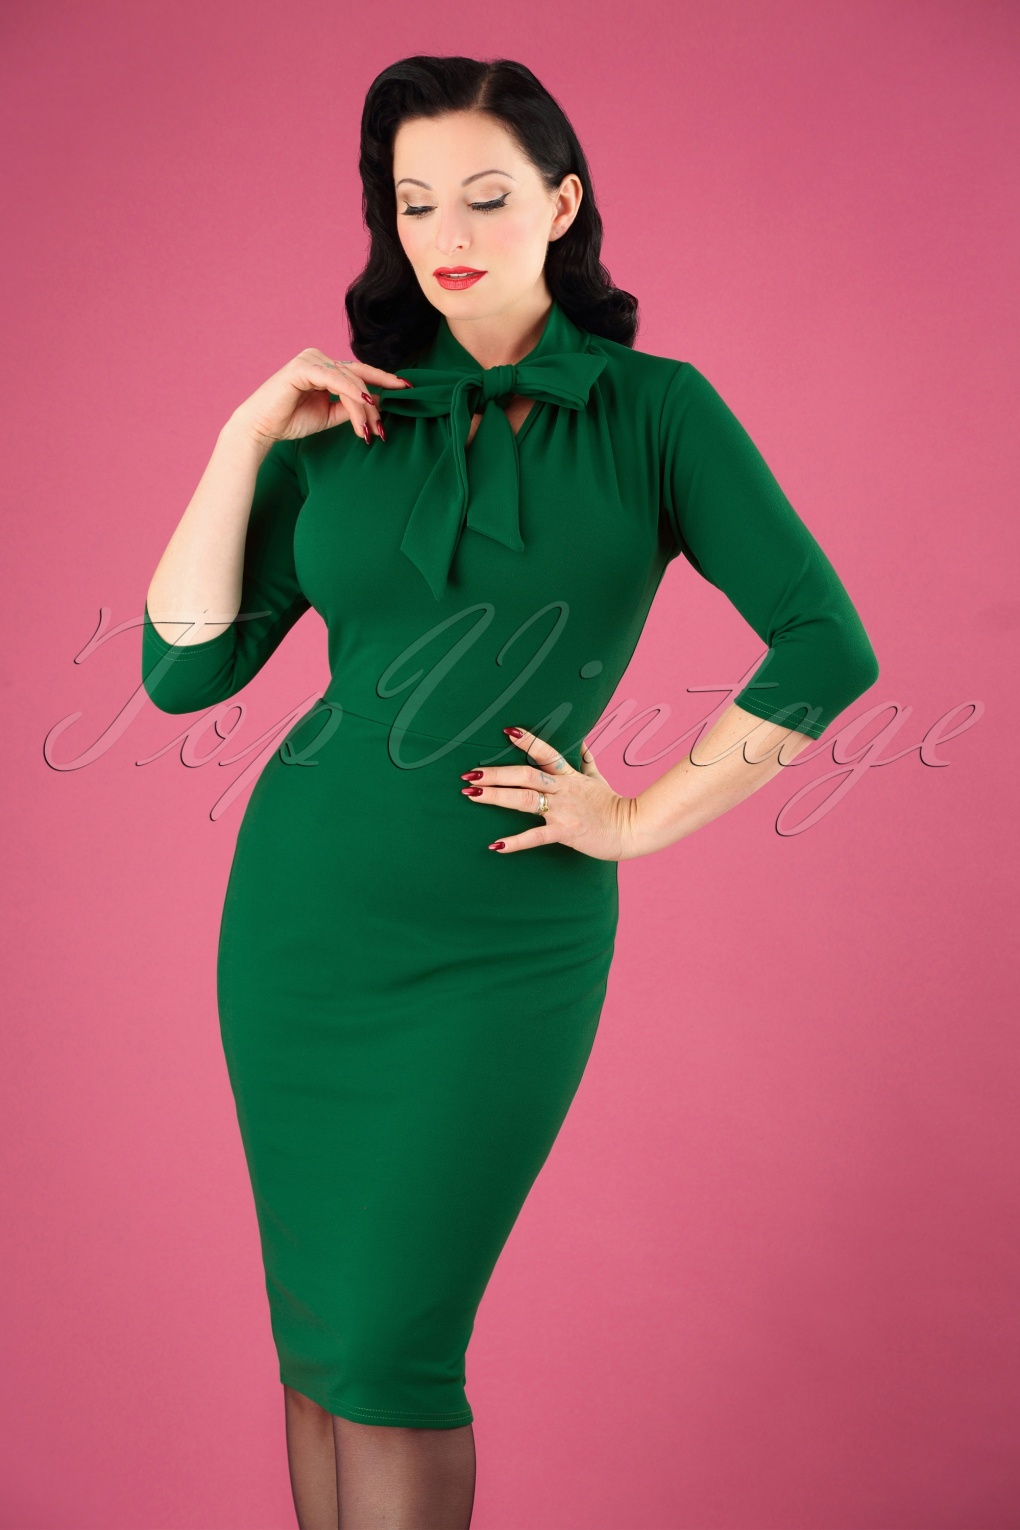 1950s Dresses, 50s Dresses | 1950s Style Dresses 50s Lindsay Tie Neck Pencil Dress in Emerald Green £48.95 AT vintagedancer.com